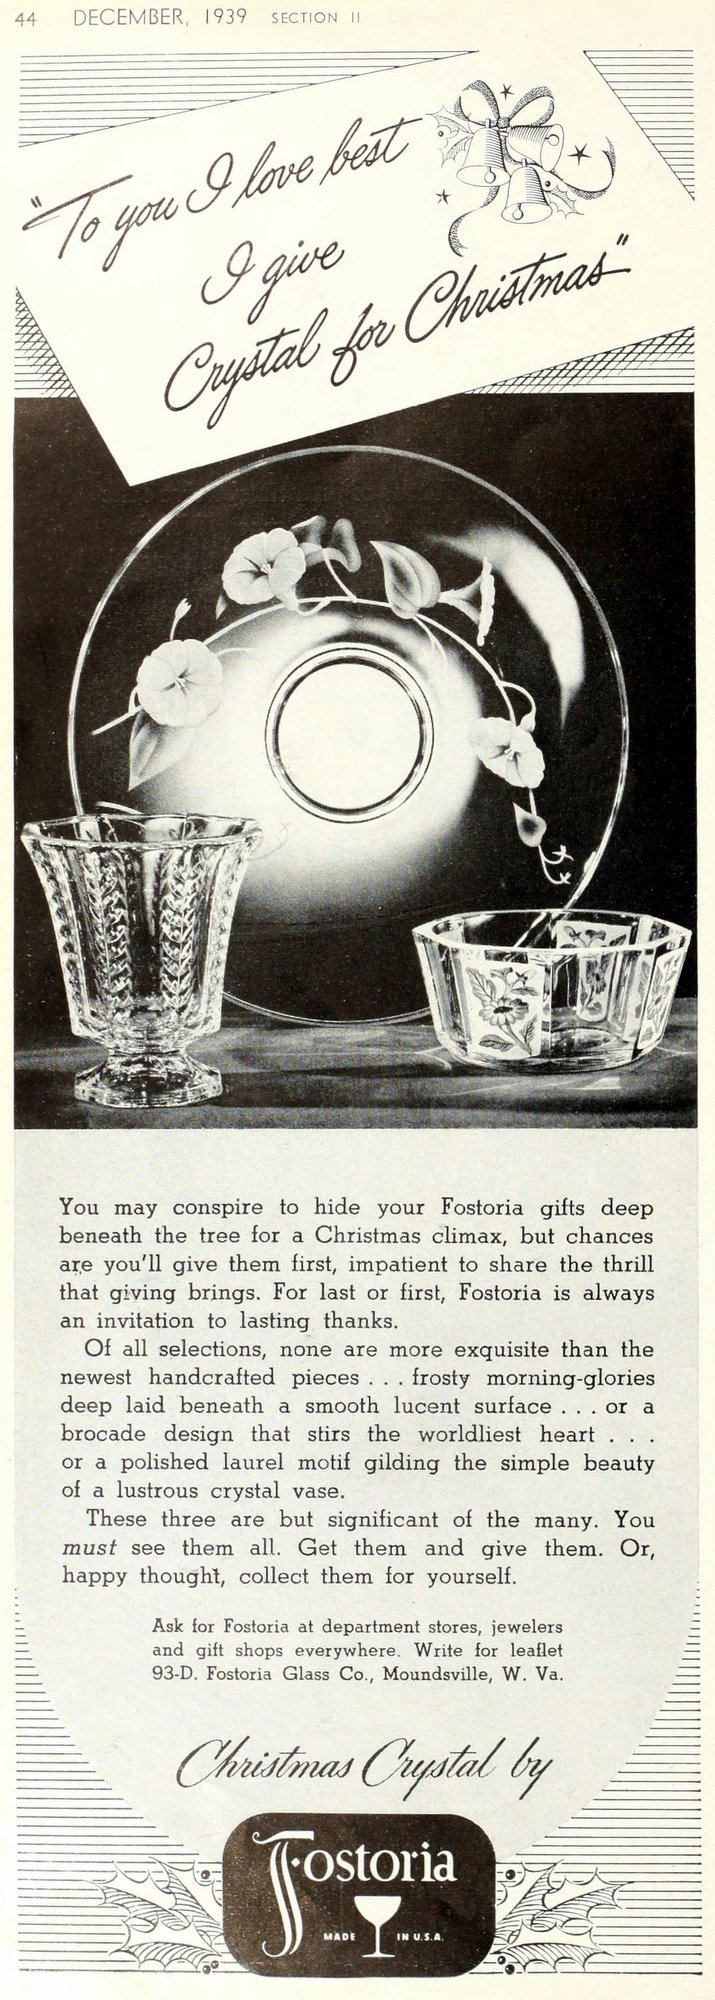 Old fashioned Christmas crystal from Fostoria (1939)